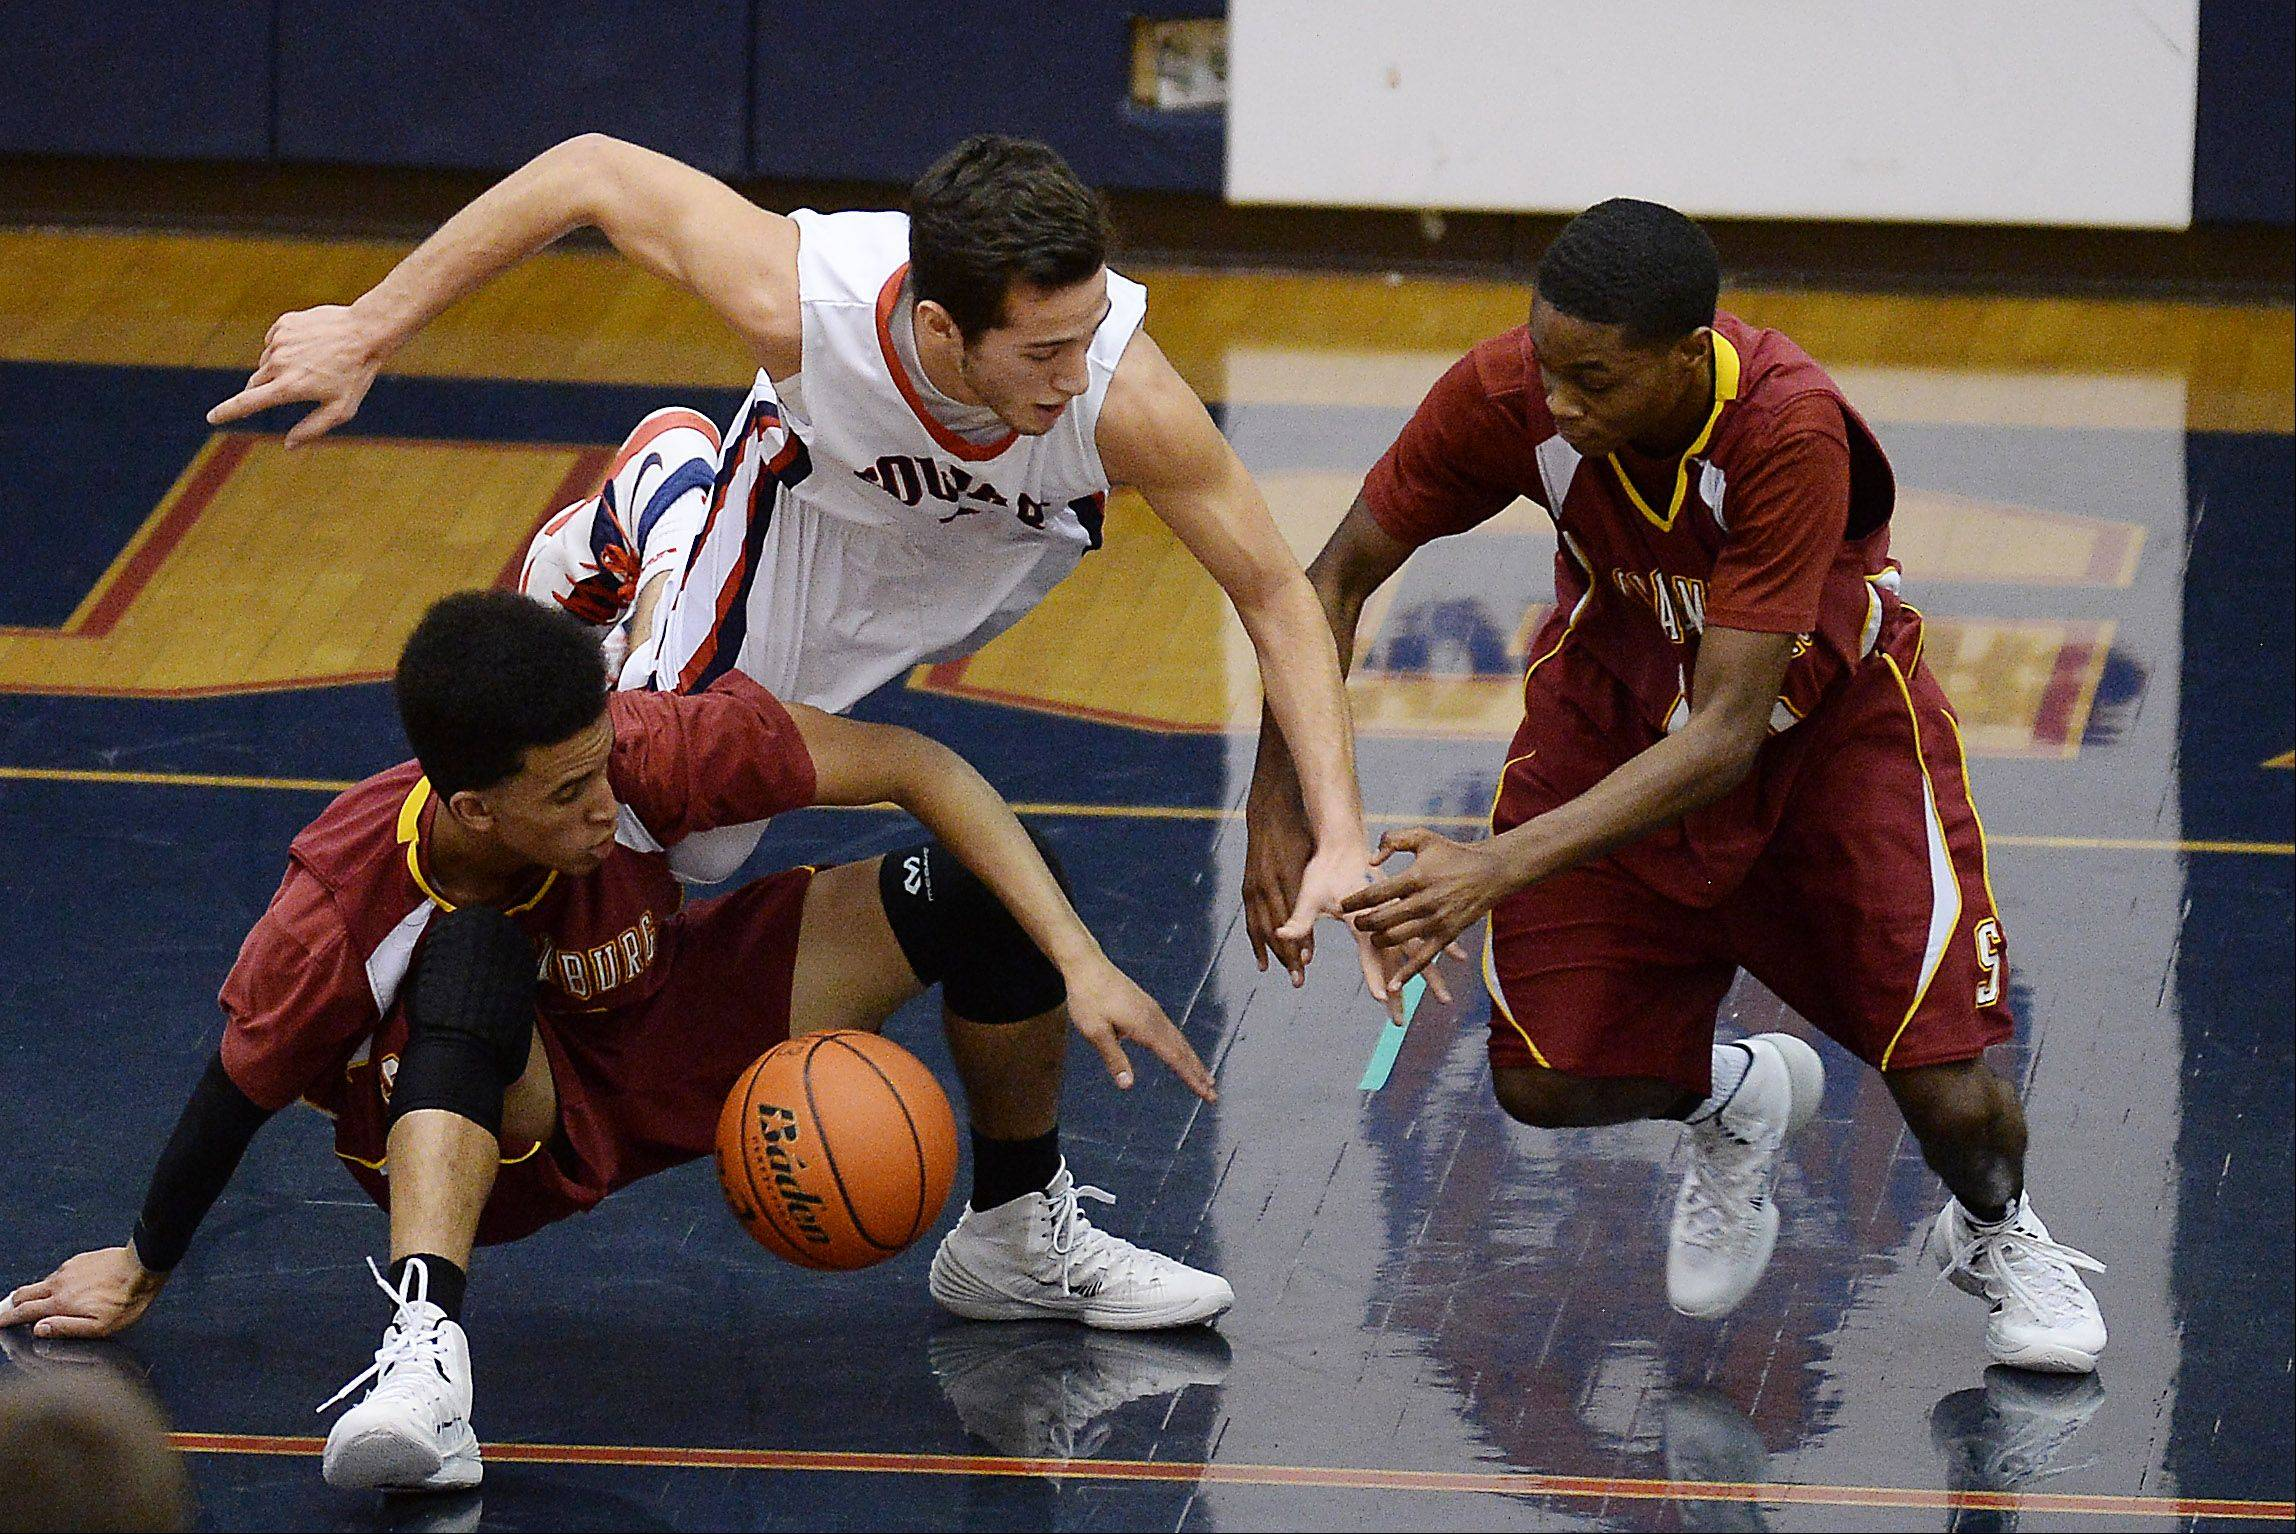 Conant's Joe Ranallo goes after a loose ball between Schaumburg's Brendan Parker and Marquis Woodard at Conant on Friday.